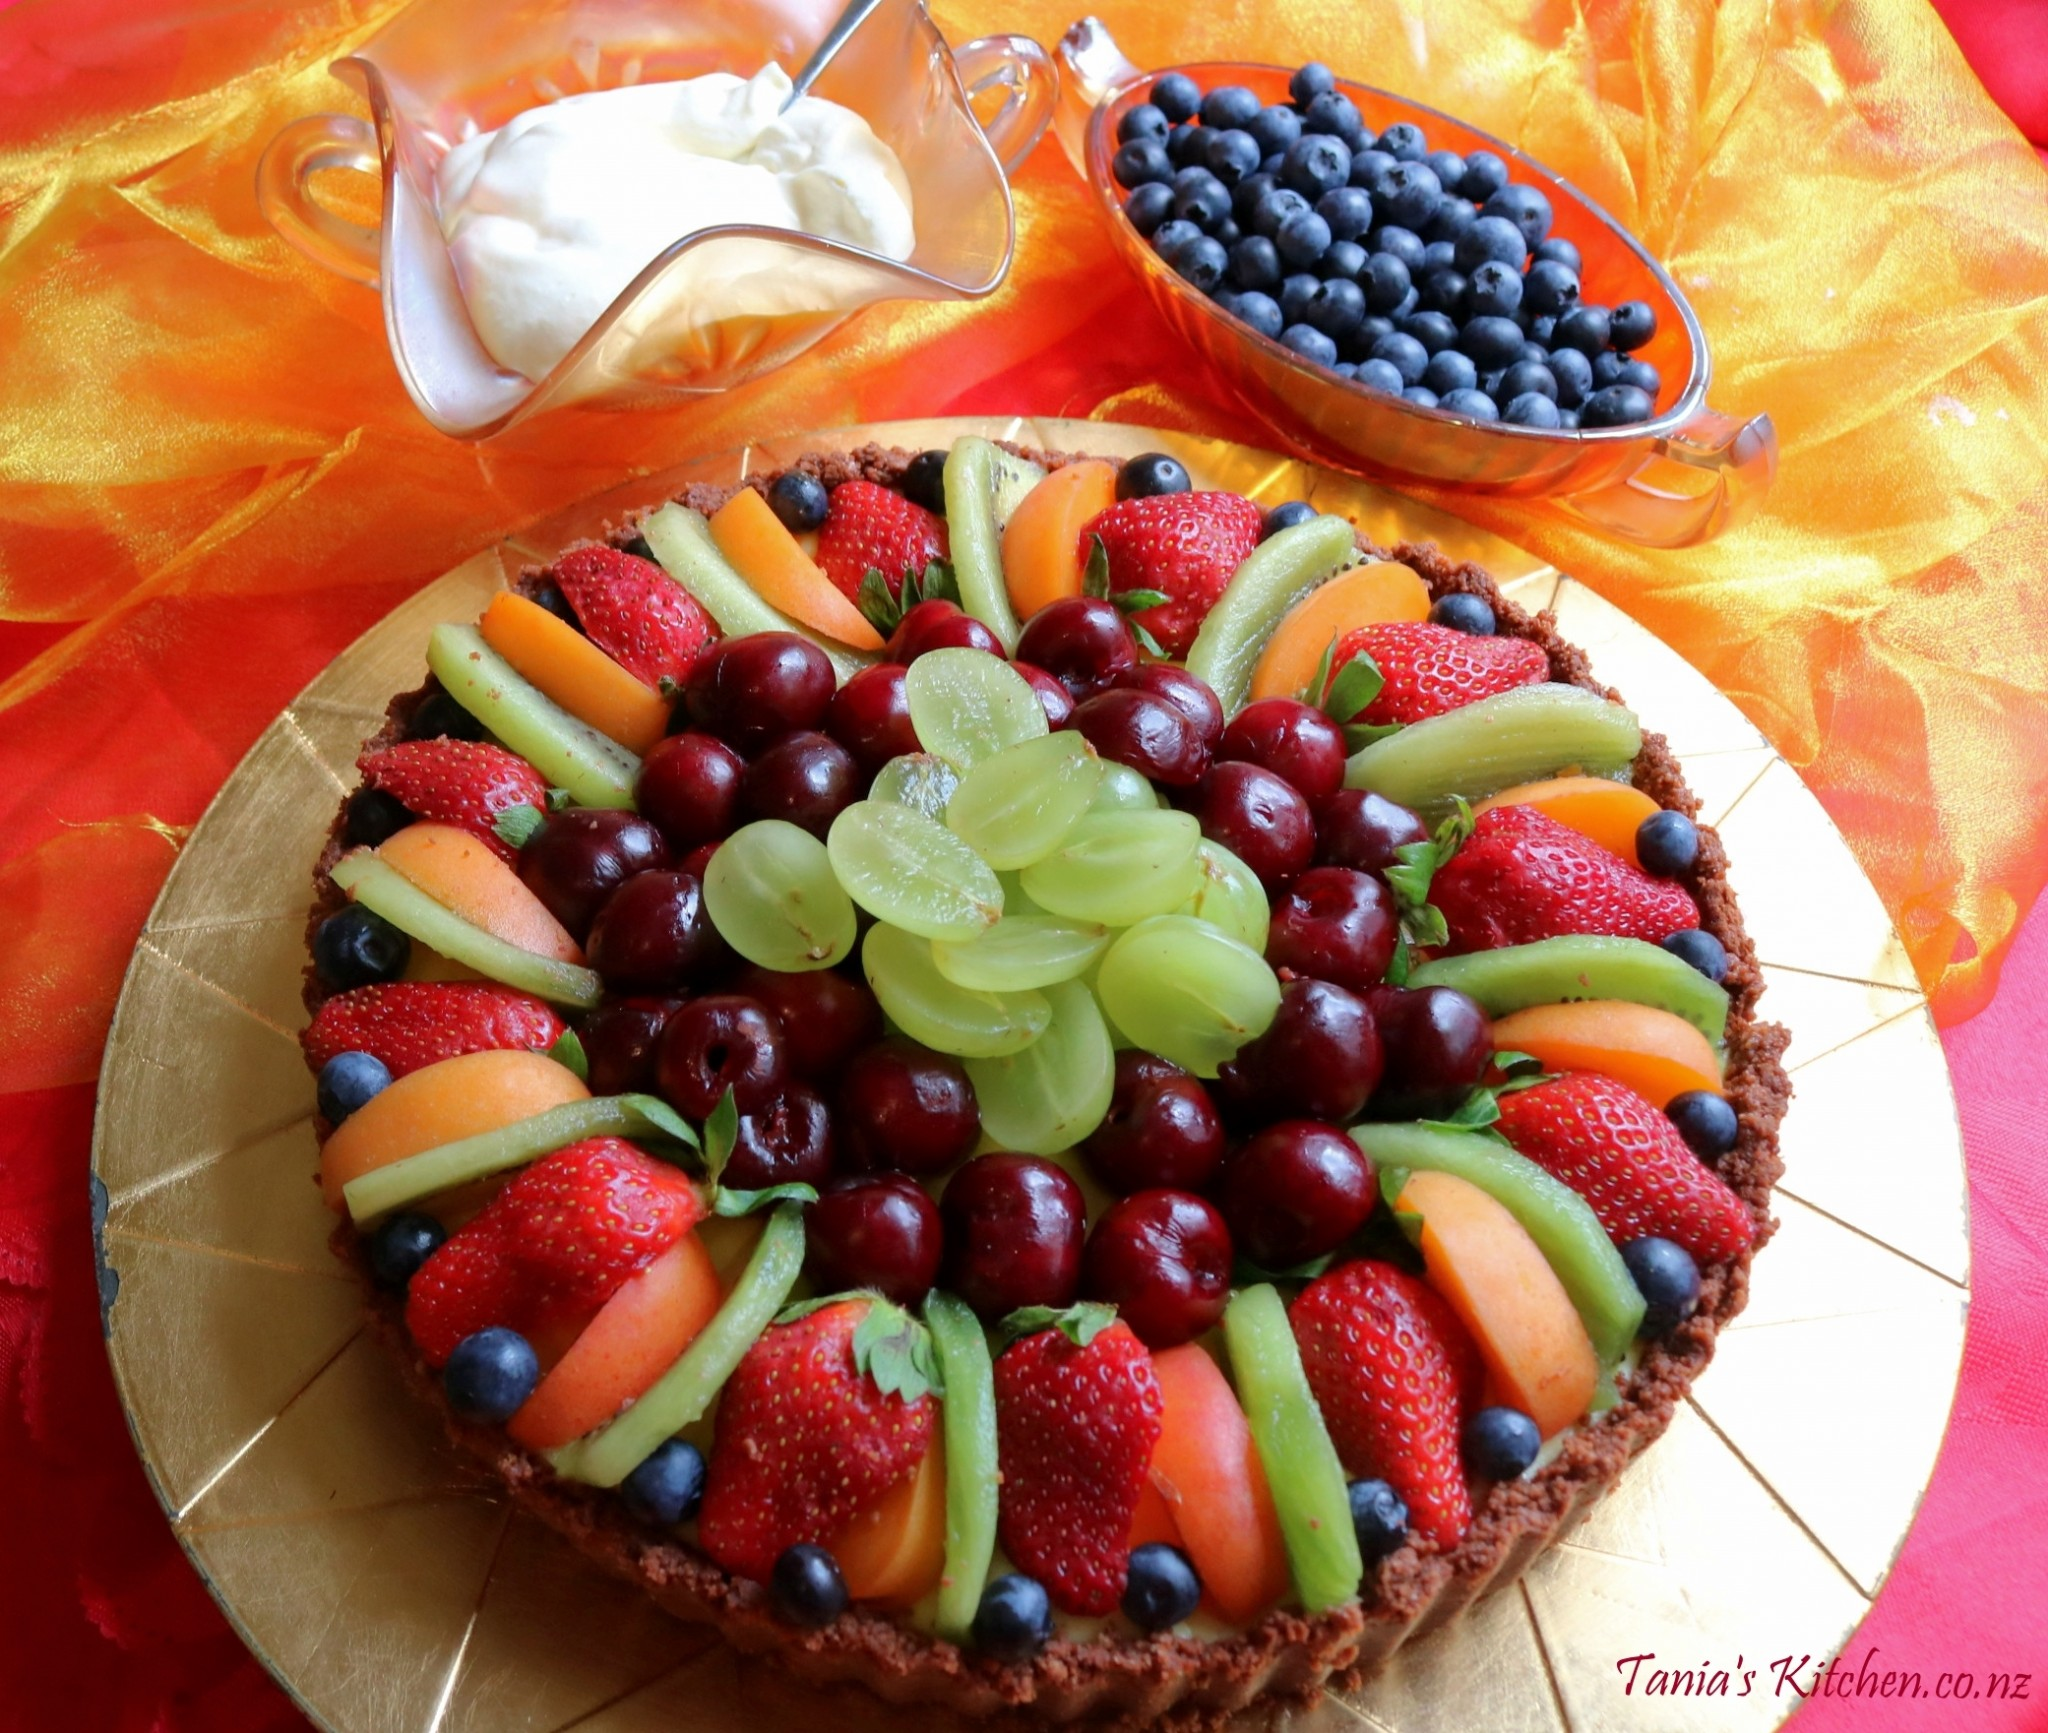 Fruit Cake Decoration Recipe